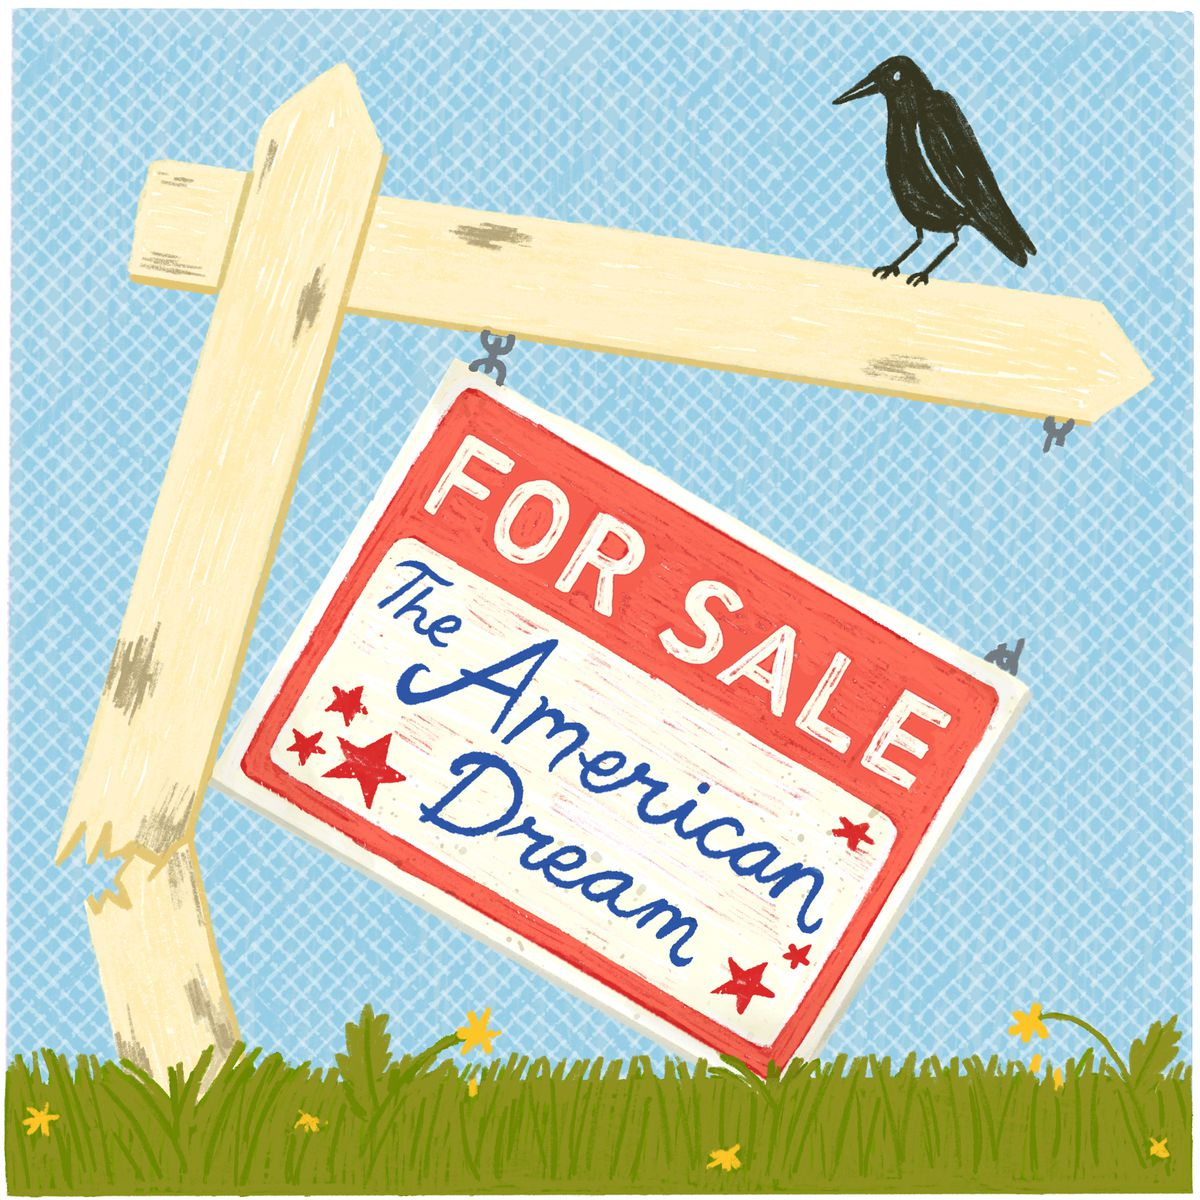 """A black crow sitting on a dilapidated for sale sign in a yard. The sign is hanging off crookedly and the wooden posts that hold it are cracked. The sign reads """"For sale: The American dream"""". Illustration."""